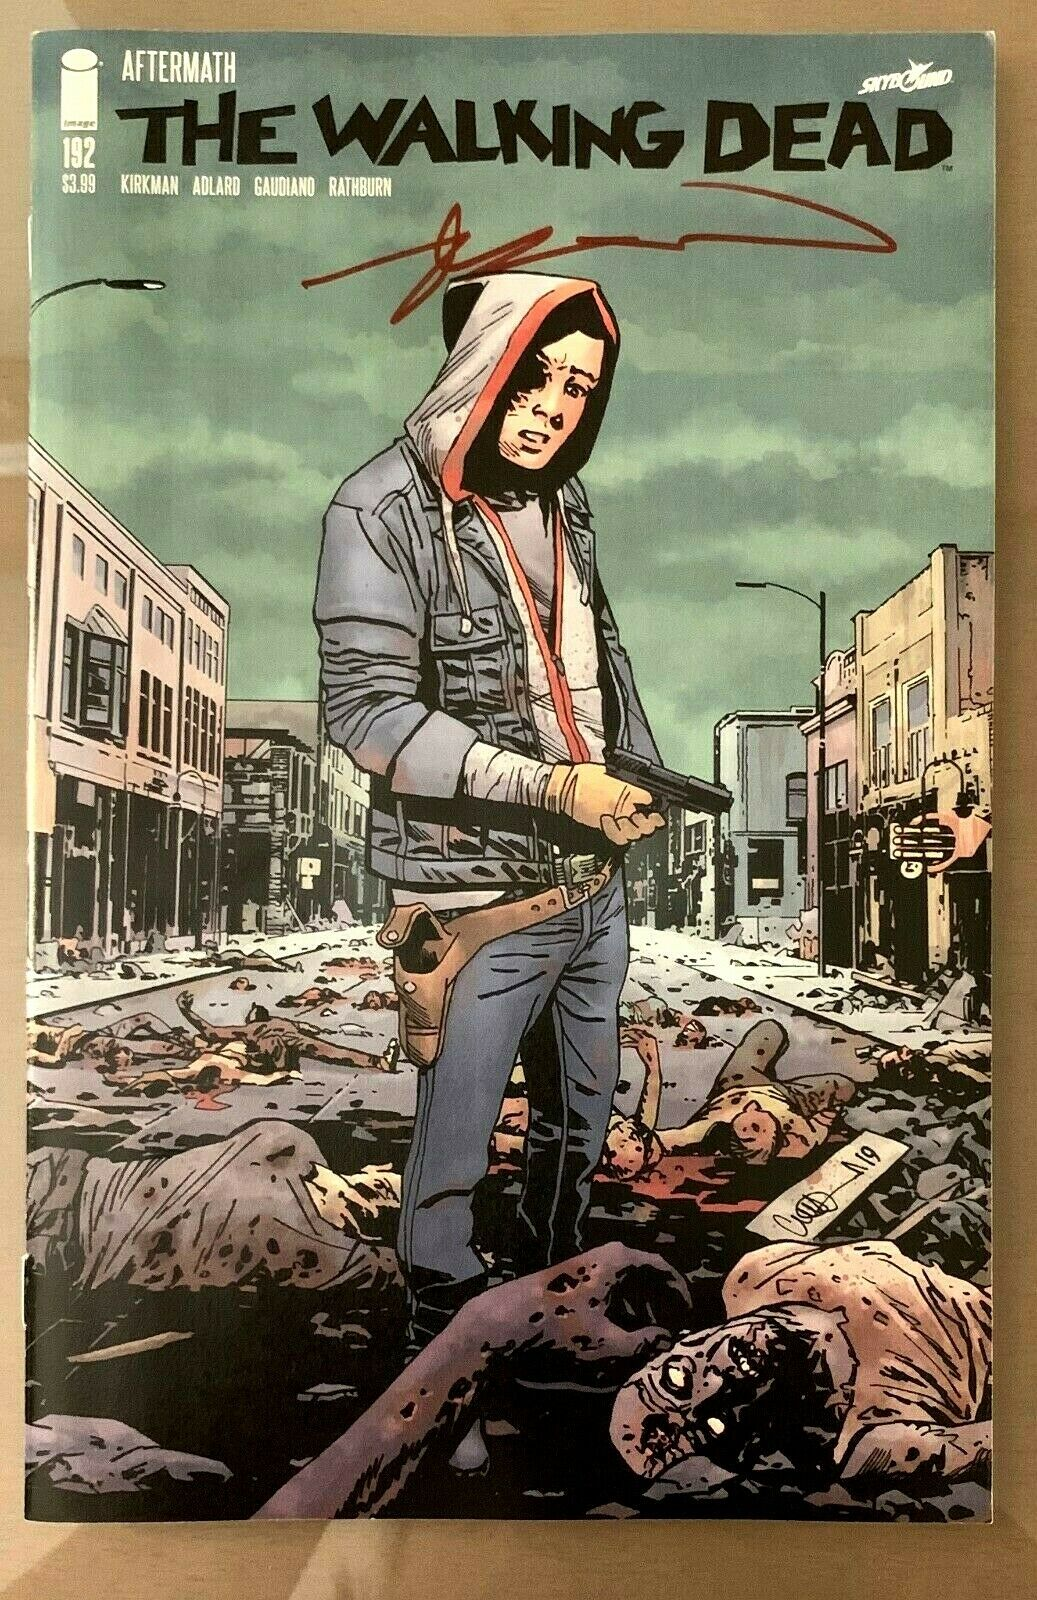 Walking Dead #192 1st Print SIGNED by Robert Kirkman Image Comics 2019